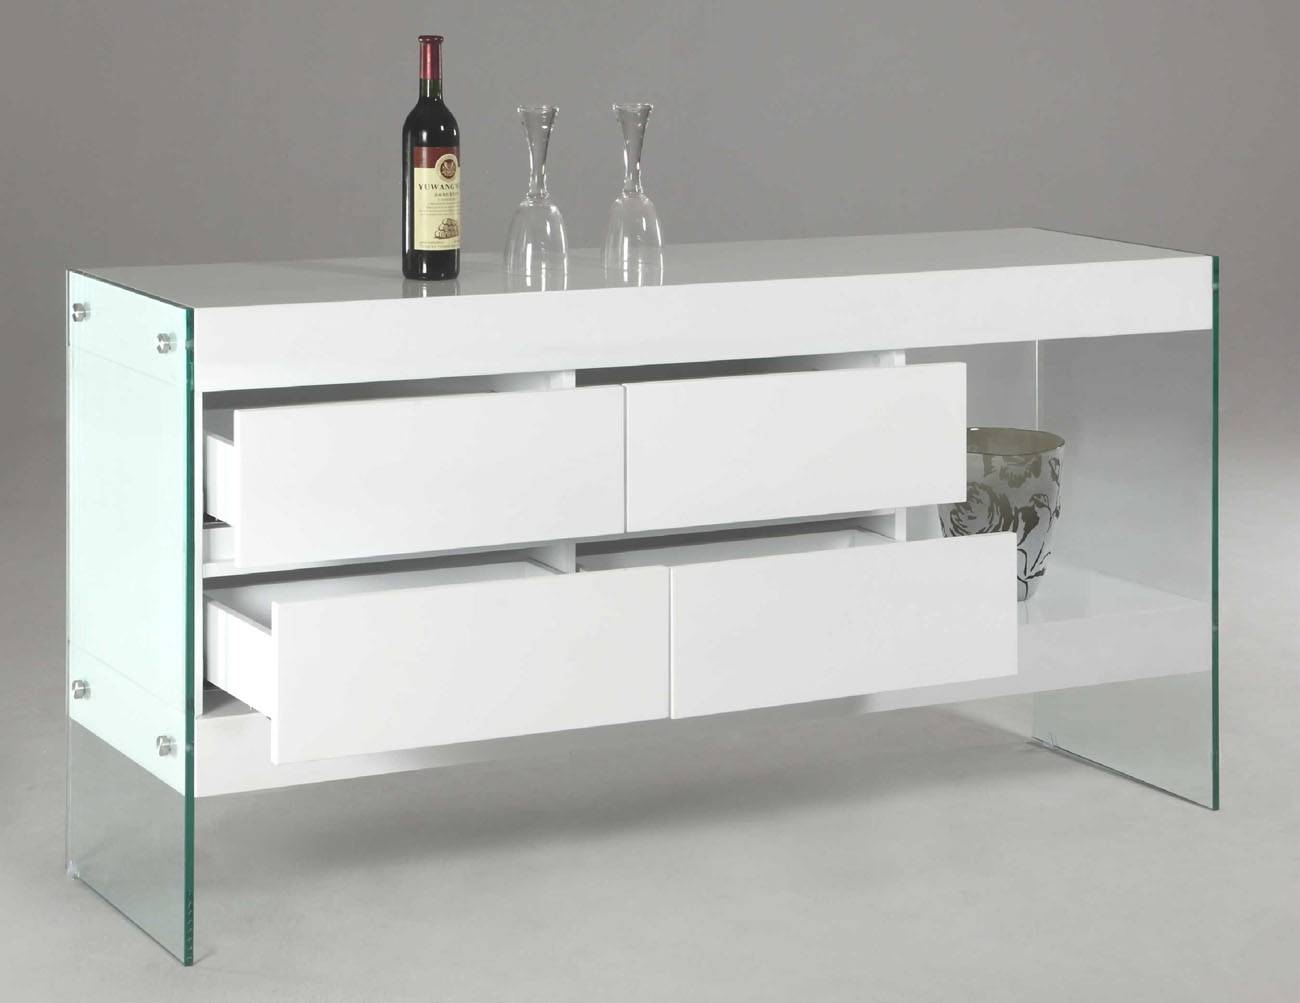 White Lacquer Wood With Glass Sides And Legs Contemporary With Regard To Stylish Kitchen Sideboards And Buffets (View 13 of 15)